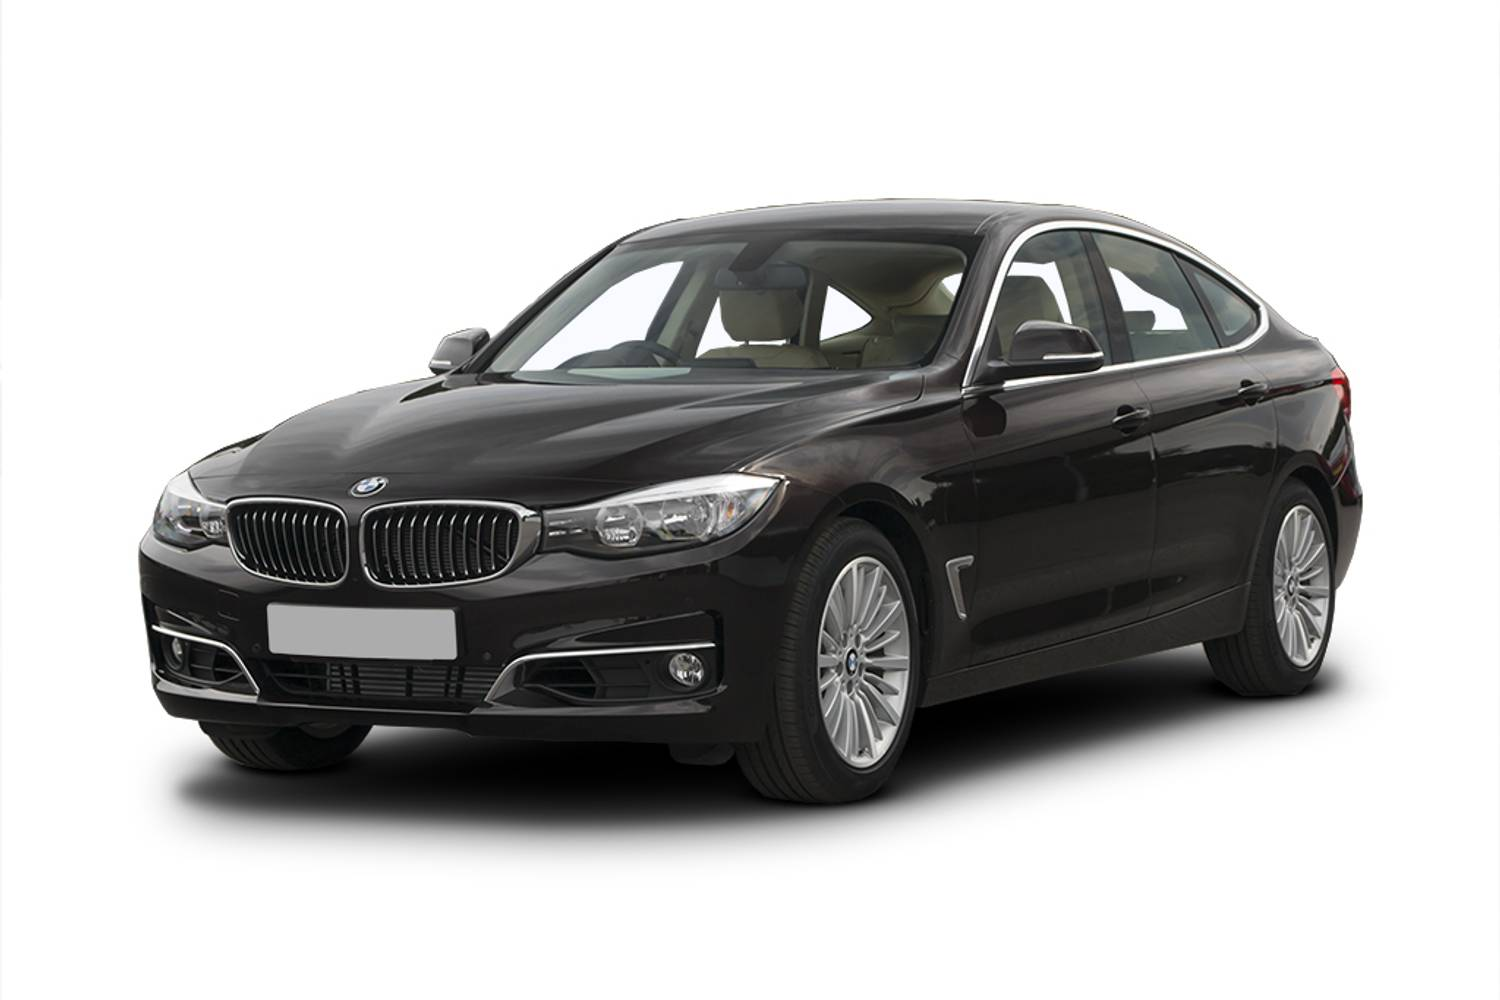 new bmw 3 series gran turismo diesel hatchback 330d m sport 5 door step auto professional media. Black Bedroom Furniture Sets. Home Design Ideas